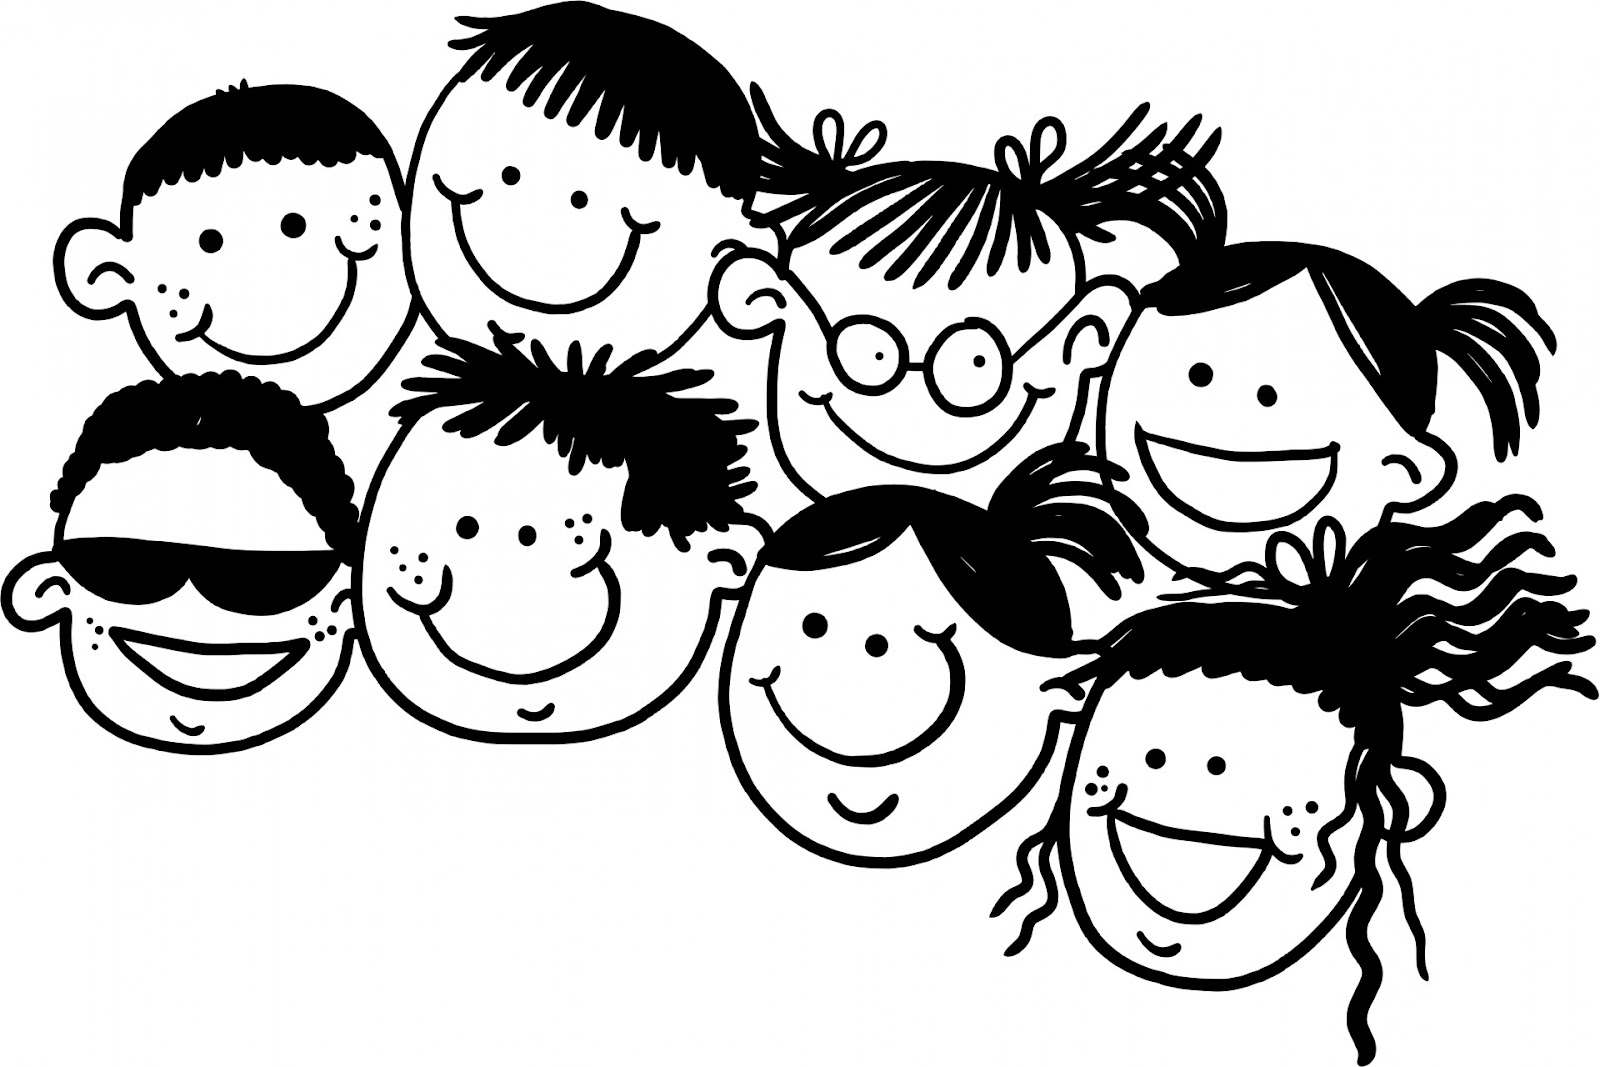 Doodle Kids Free Stock Photo - Public Domain Pictures